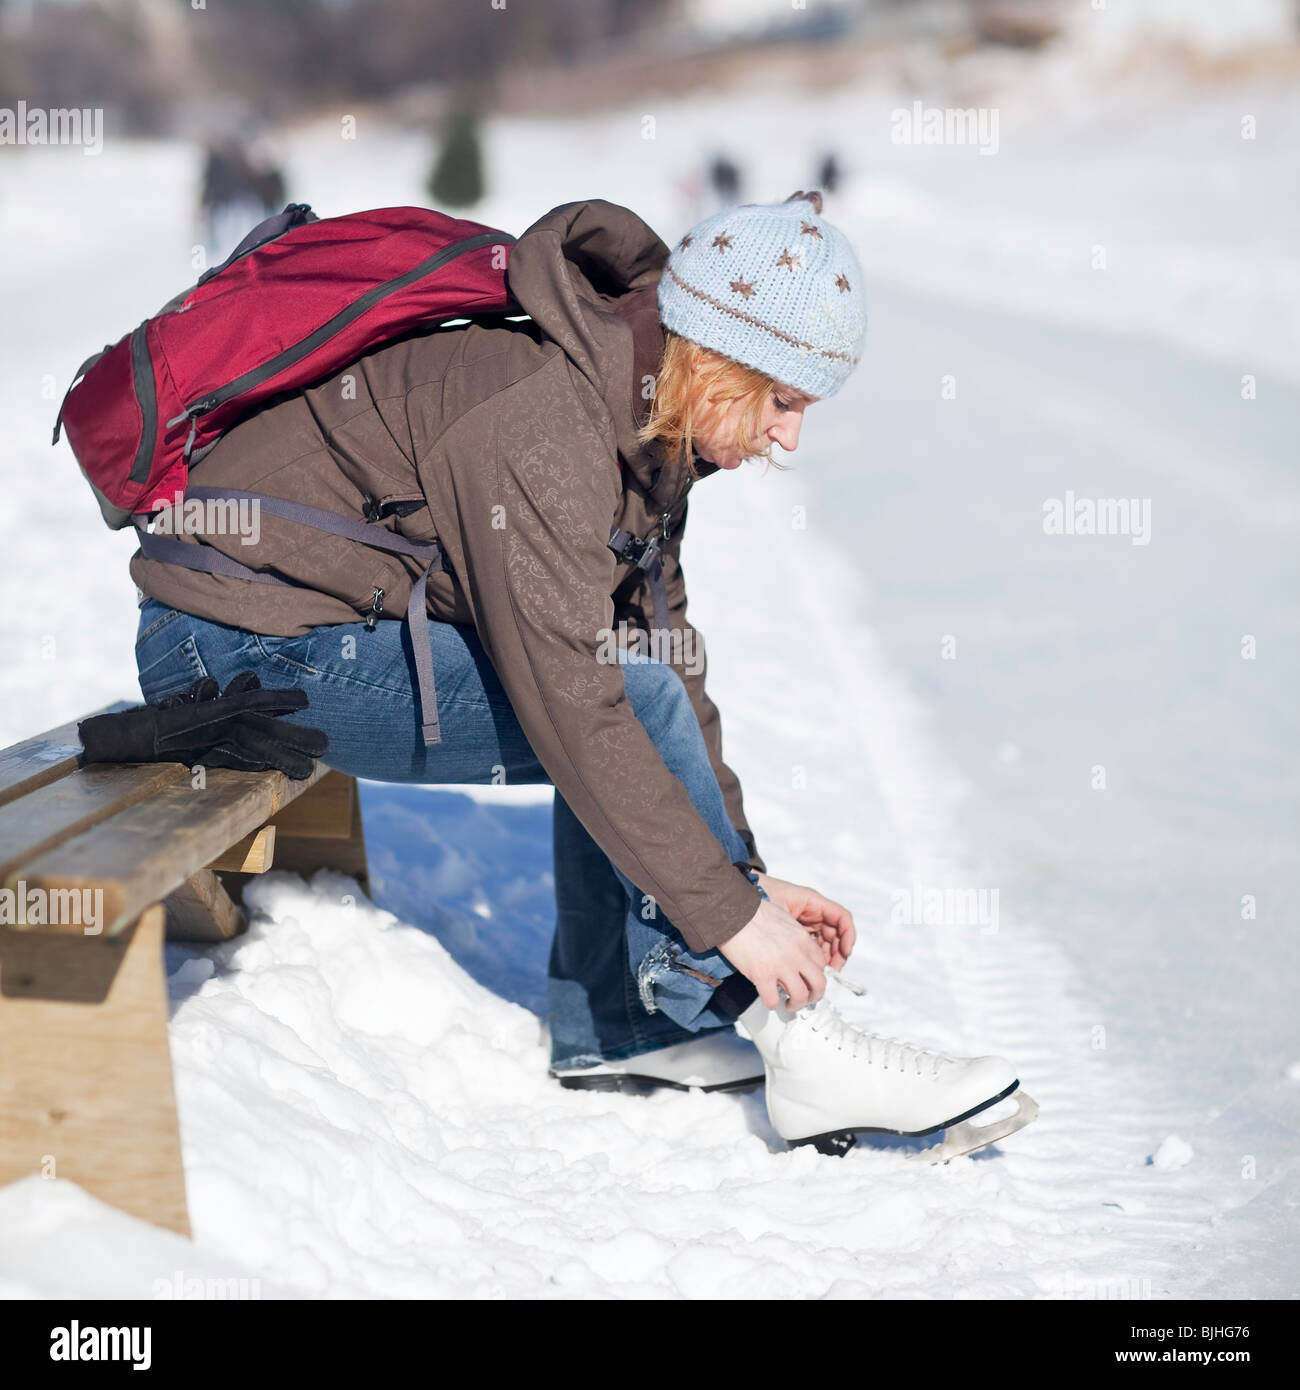 Woman lacing up her ice skates outdoors, Assiniboine River Trail, Winnipeg, Manitoba, Canada. - Stock Image